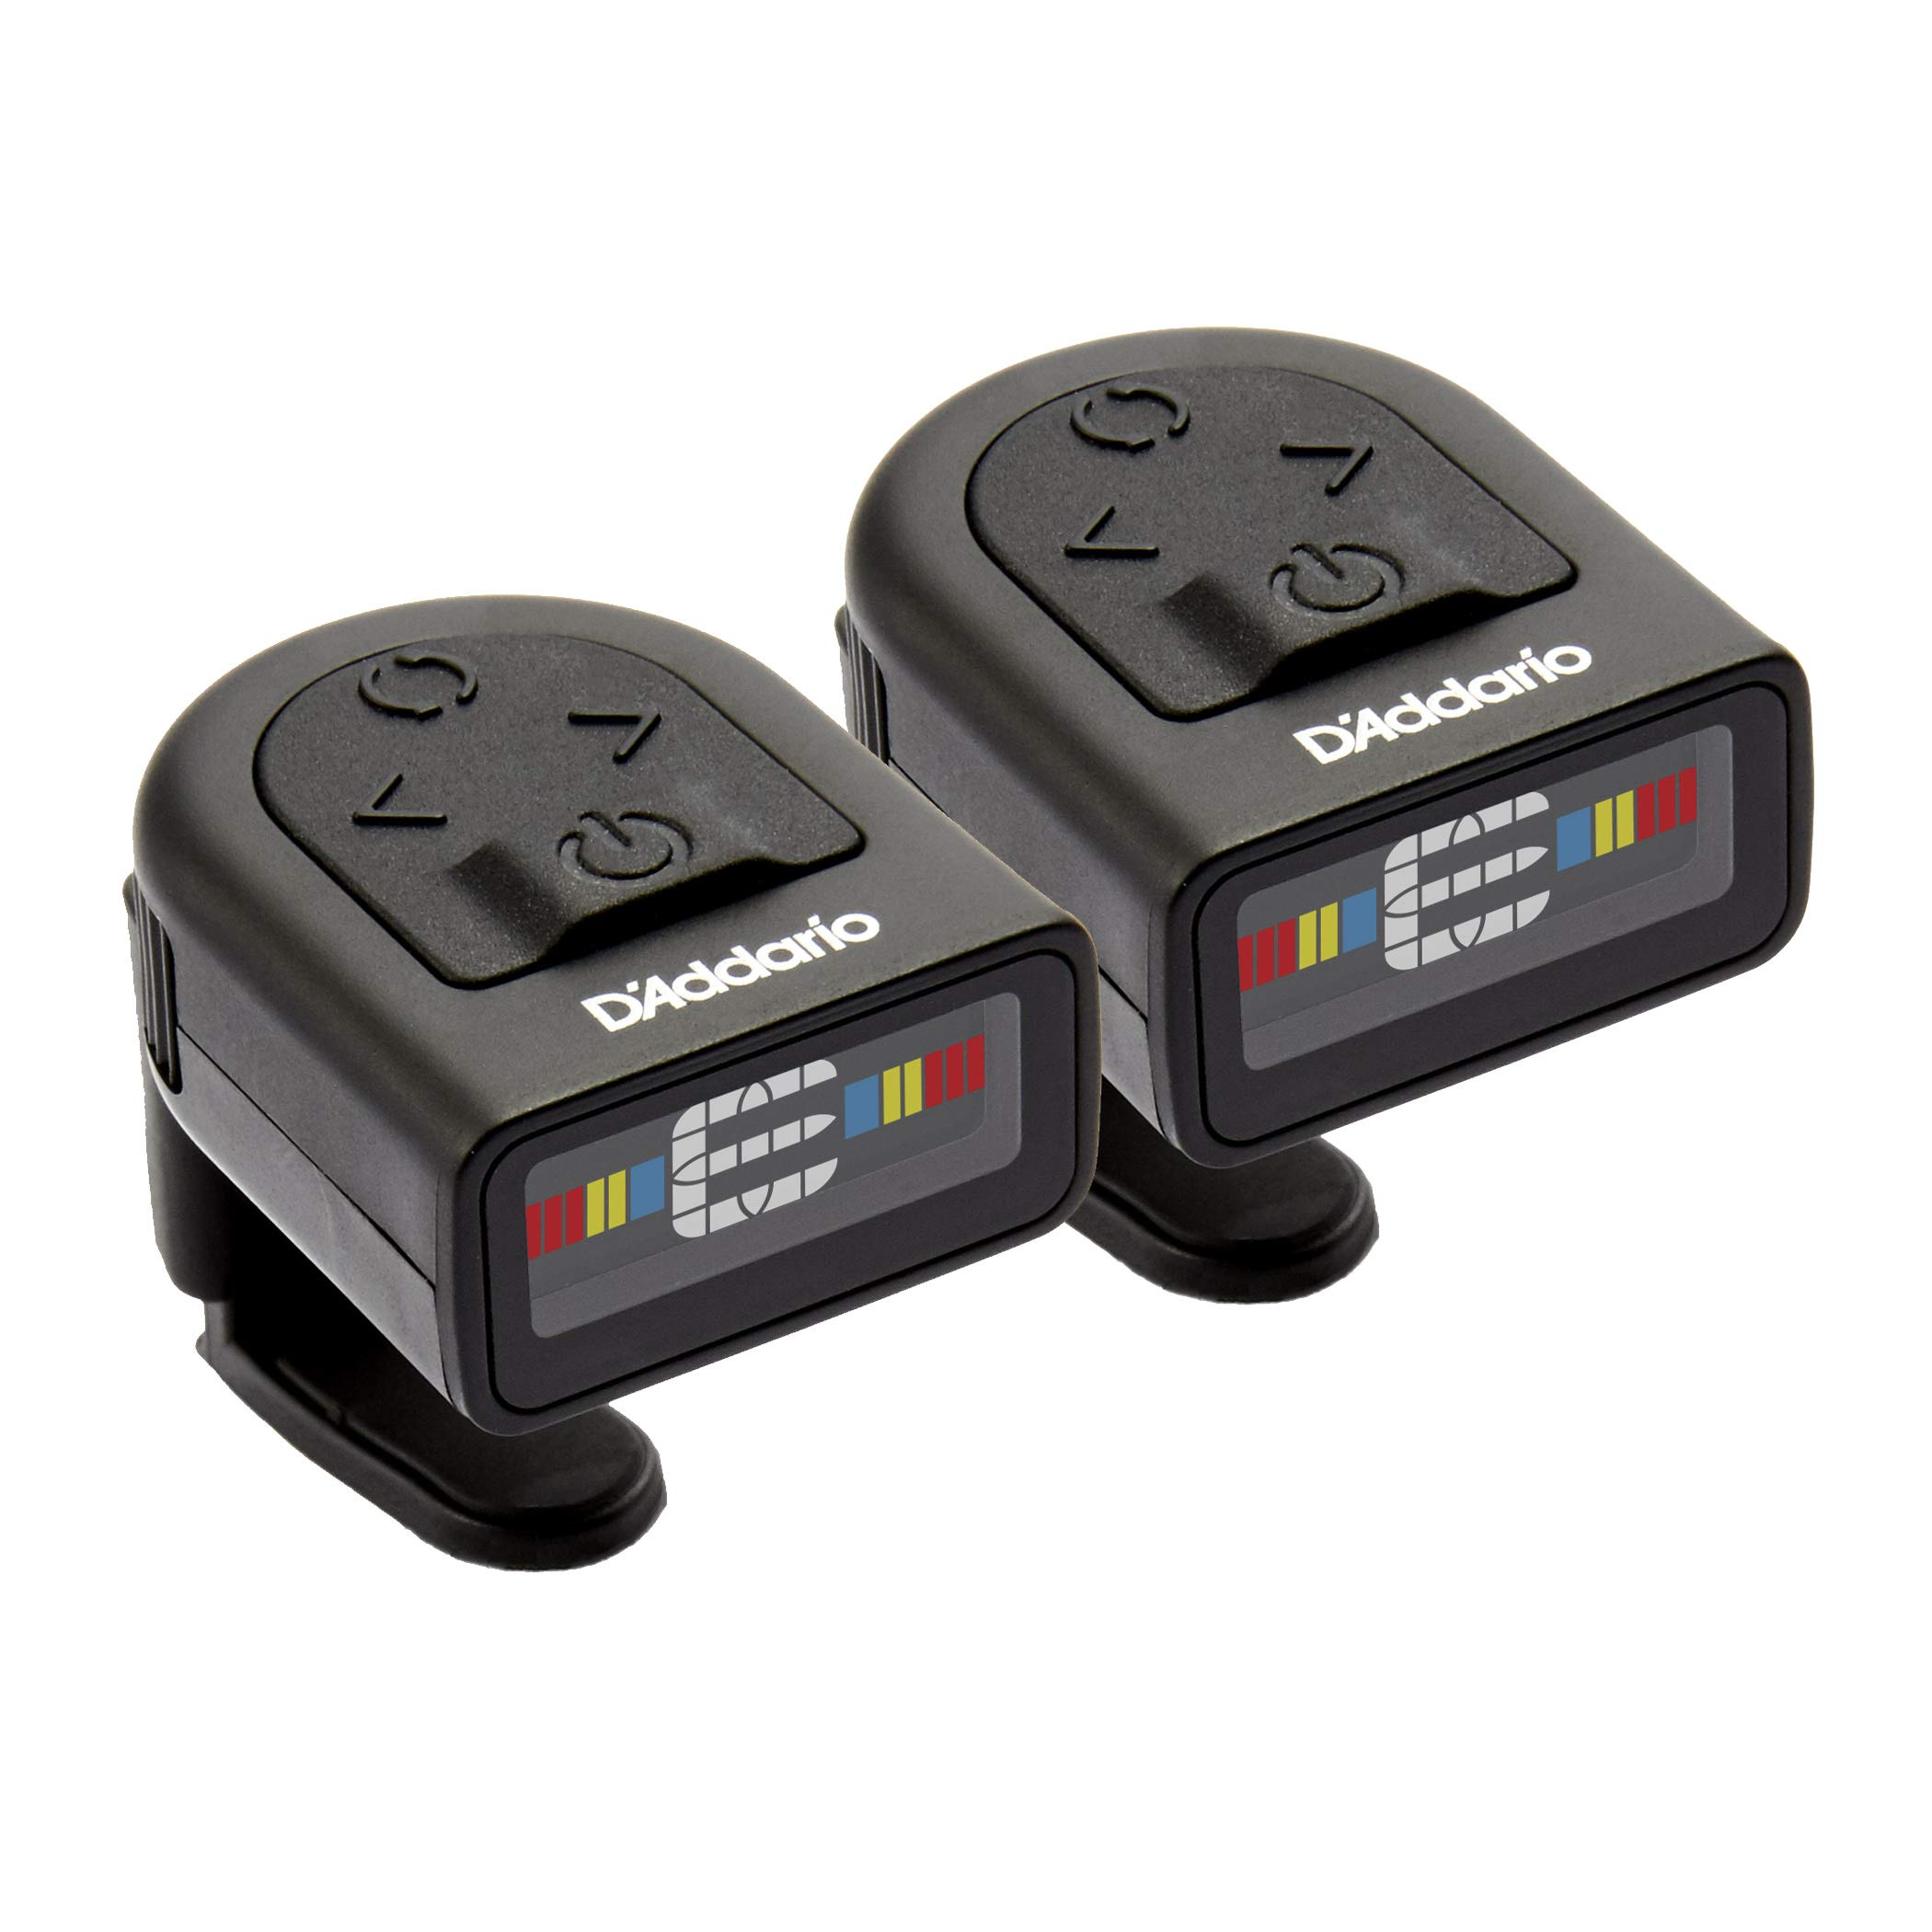 D'Addario NS Micro Clip-On Tuner, 2-Pack- Highly Precise, Easy to Read, Clip-On Tuner for Guitar, Mandolin, Bass and More -Wide Calibration Range and Metronome -Compact Low-Profile Design